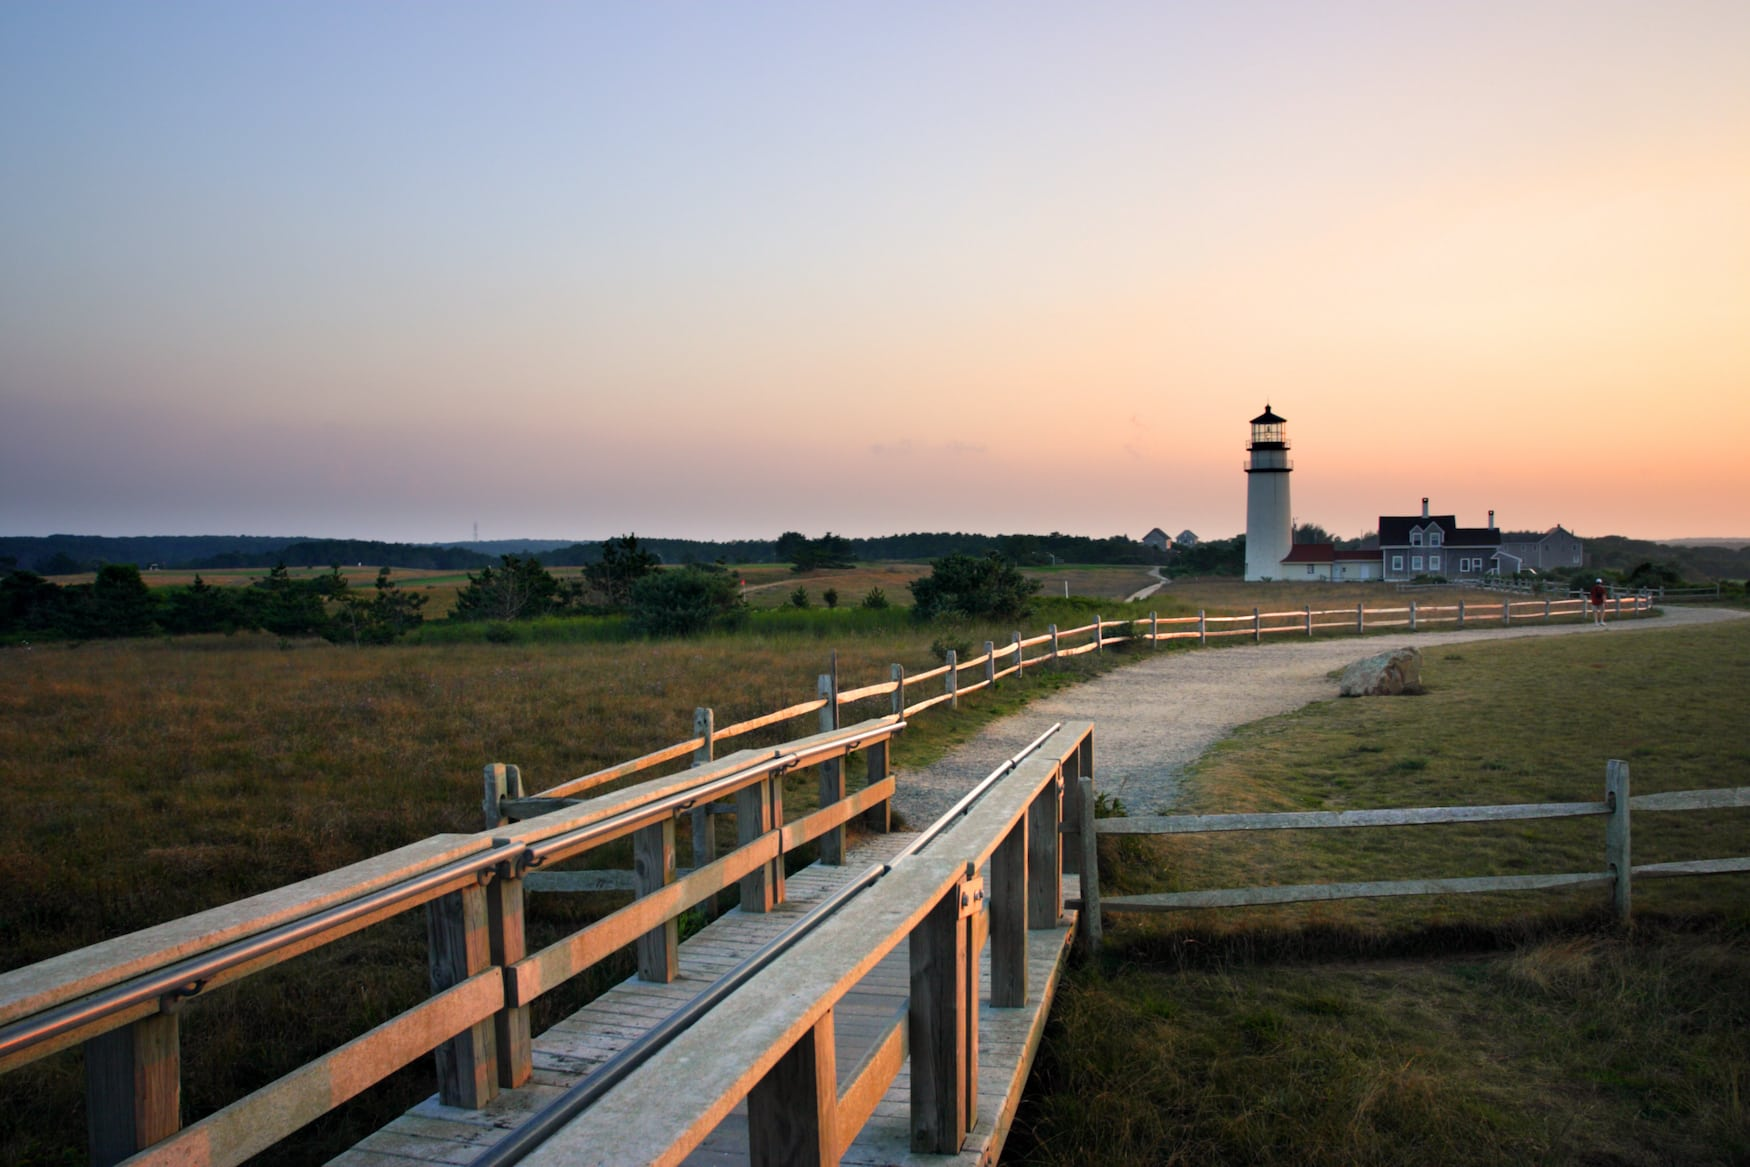 Race Point Light ist ein historischer Leuchtturm auf Cape Cod, Massachusetts